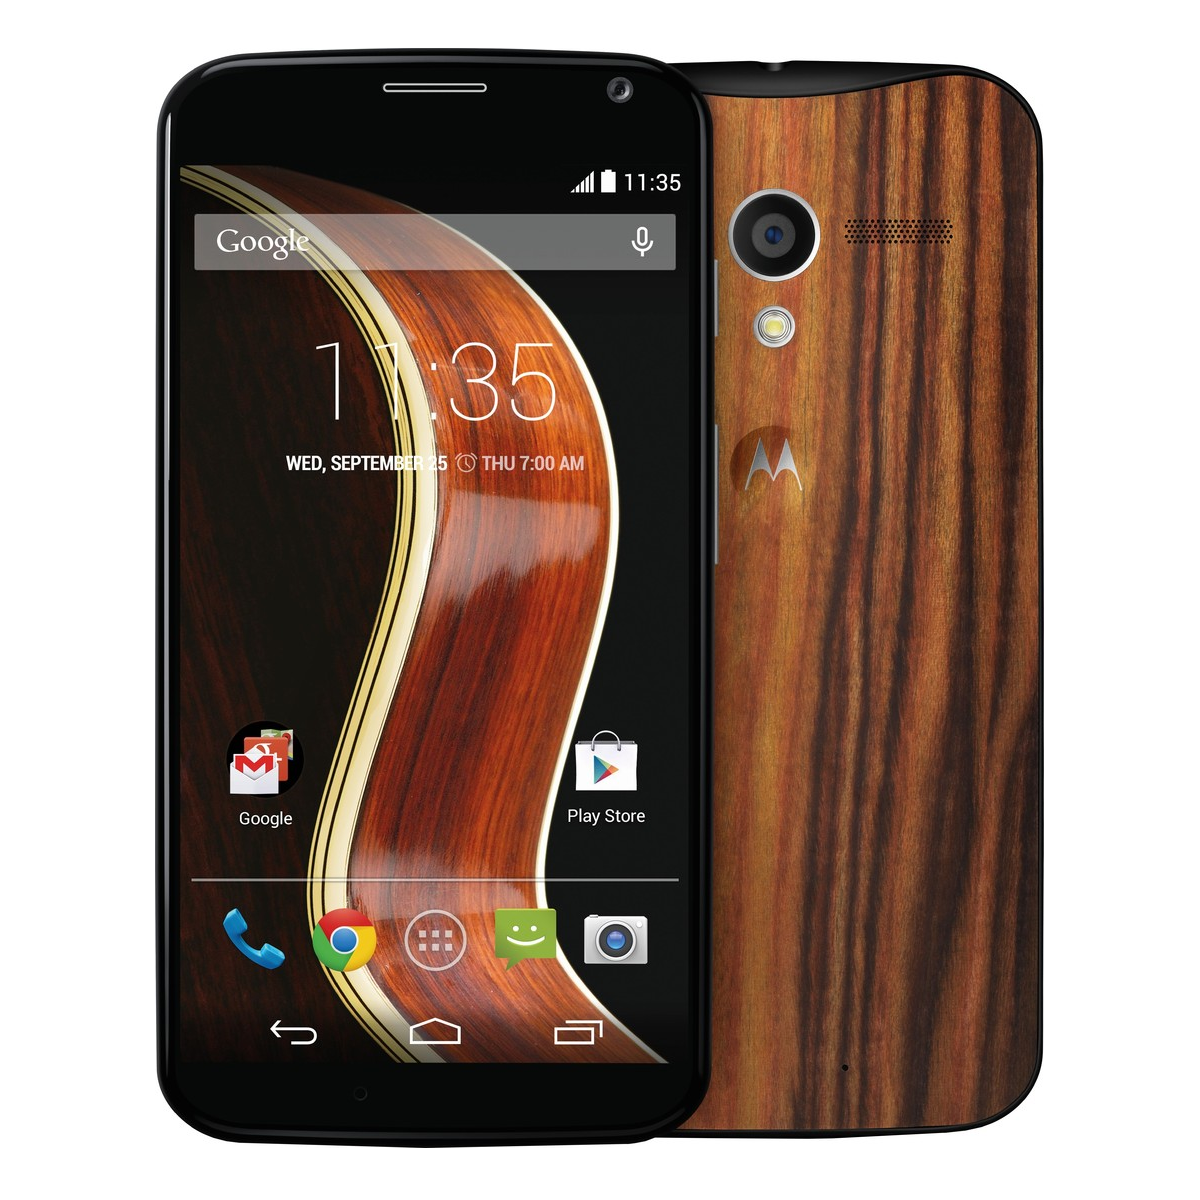 Motorola Moto X 16GB Android Smartphone - Sprint - Black with Wood Back Panel